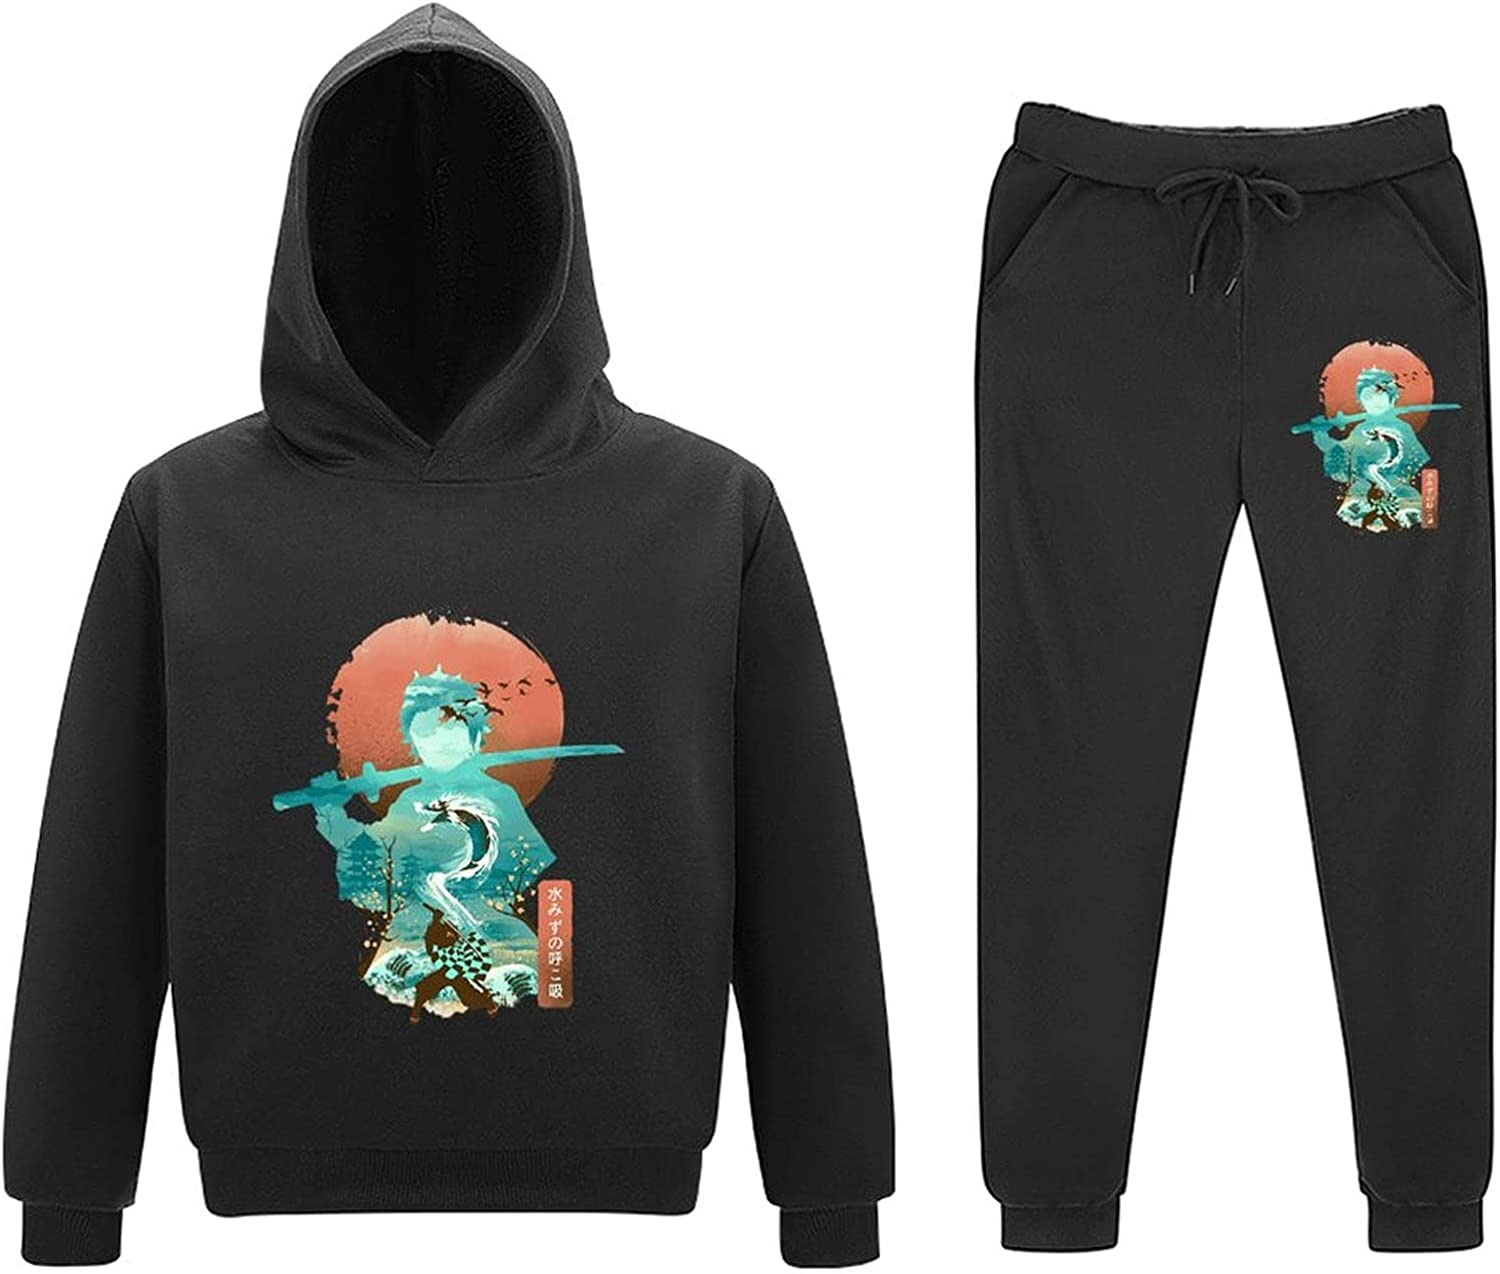 5-11Y Dem-on Slayer Kids Toddler In stock 2 Outfits Free shipping Piece Sweatsuits Pull